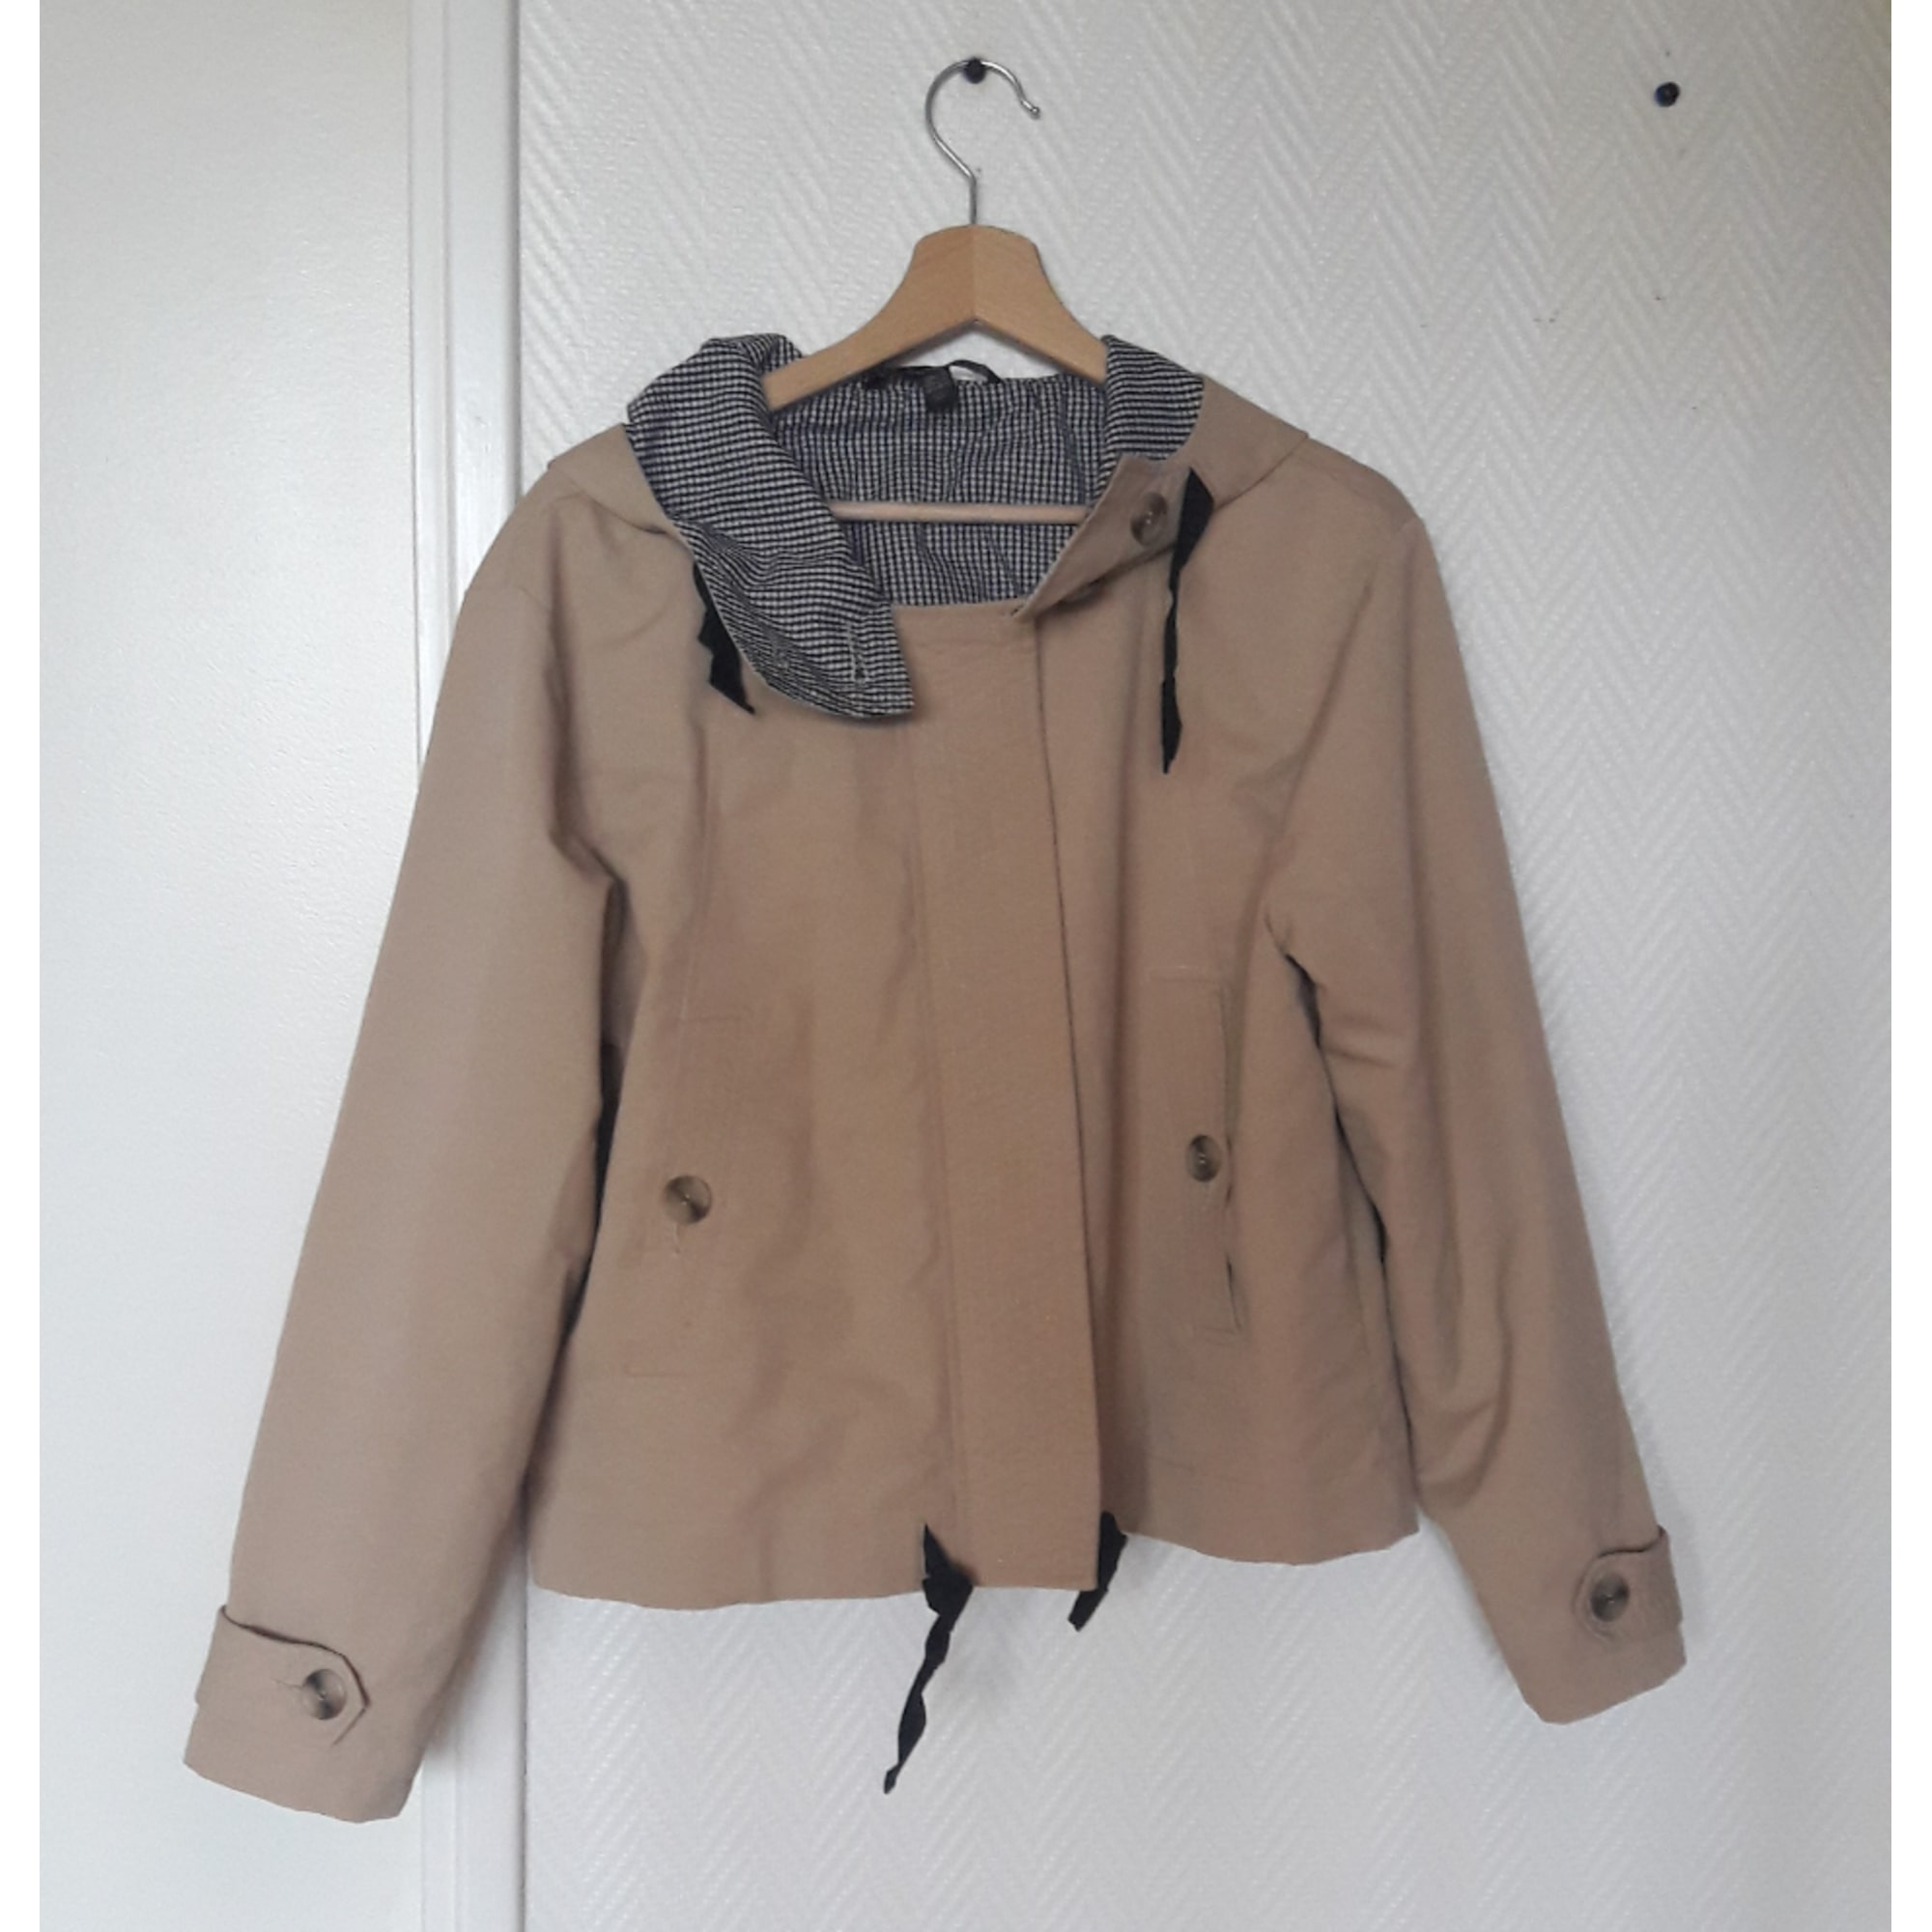 trench beige L ZARA 8213443 40 Imperméable T3 dH70Ud